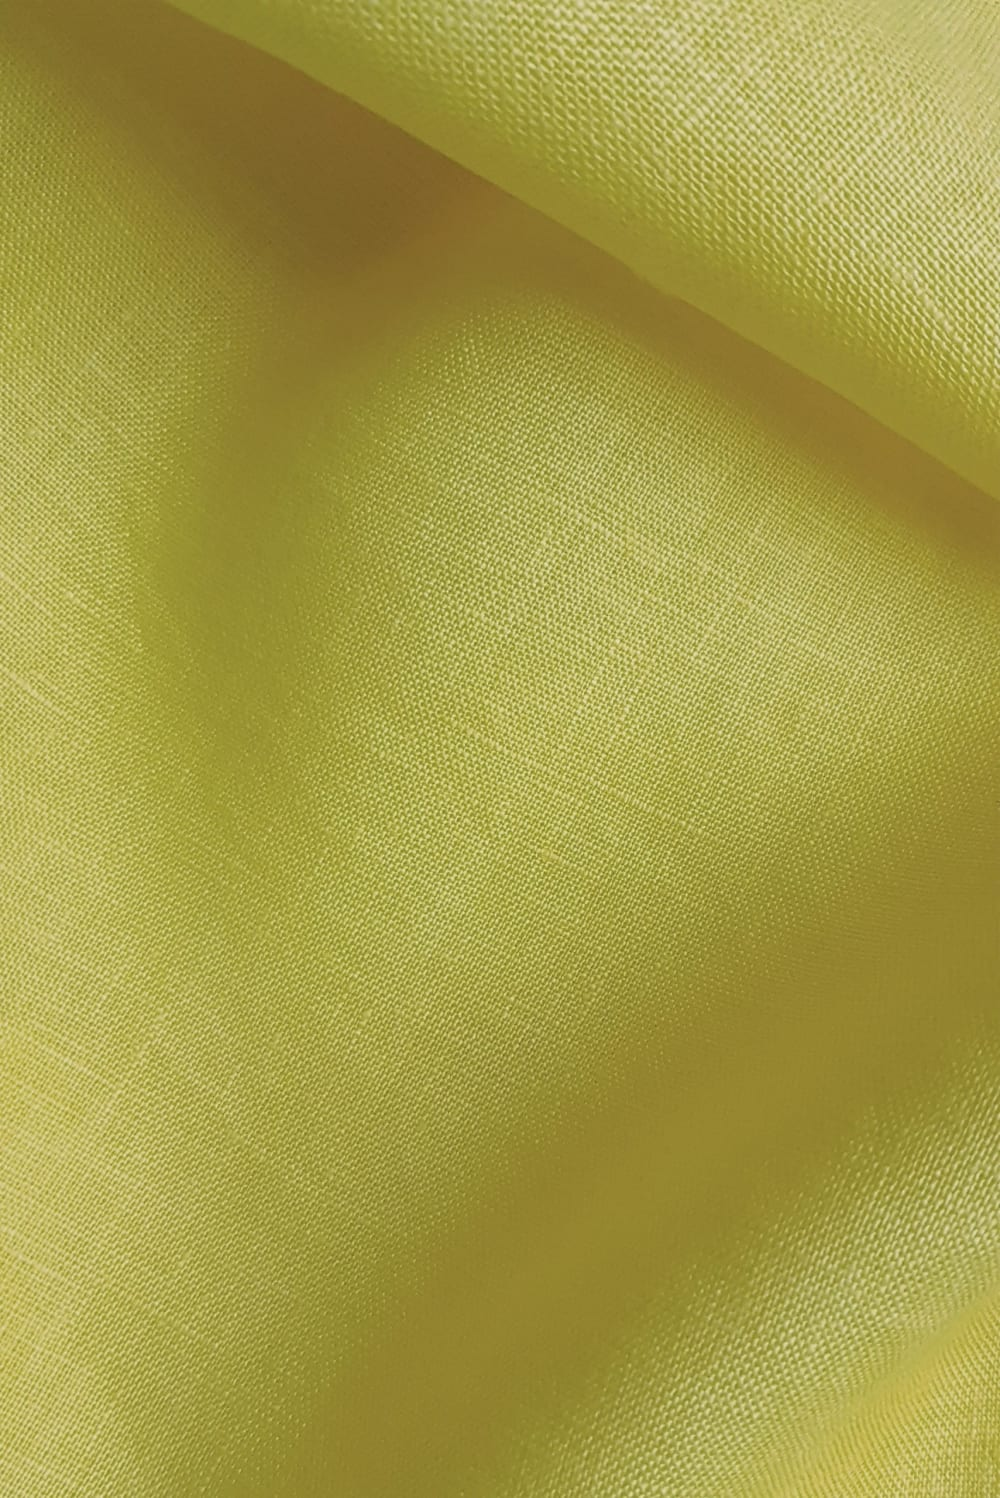 Detail of sunflower yellow hand dyed linen